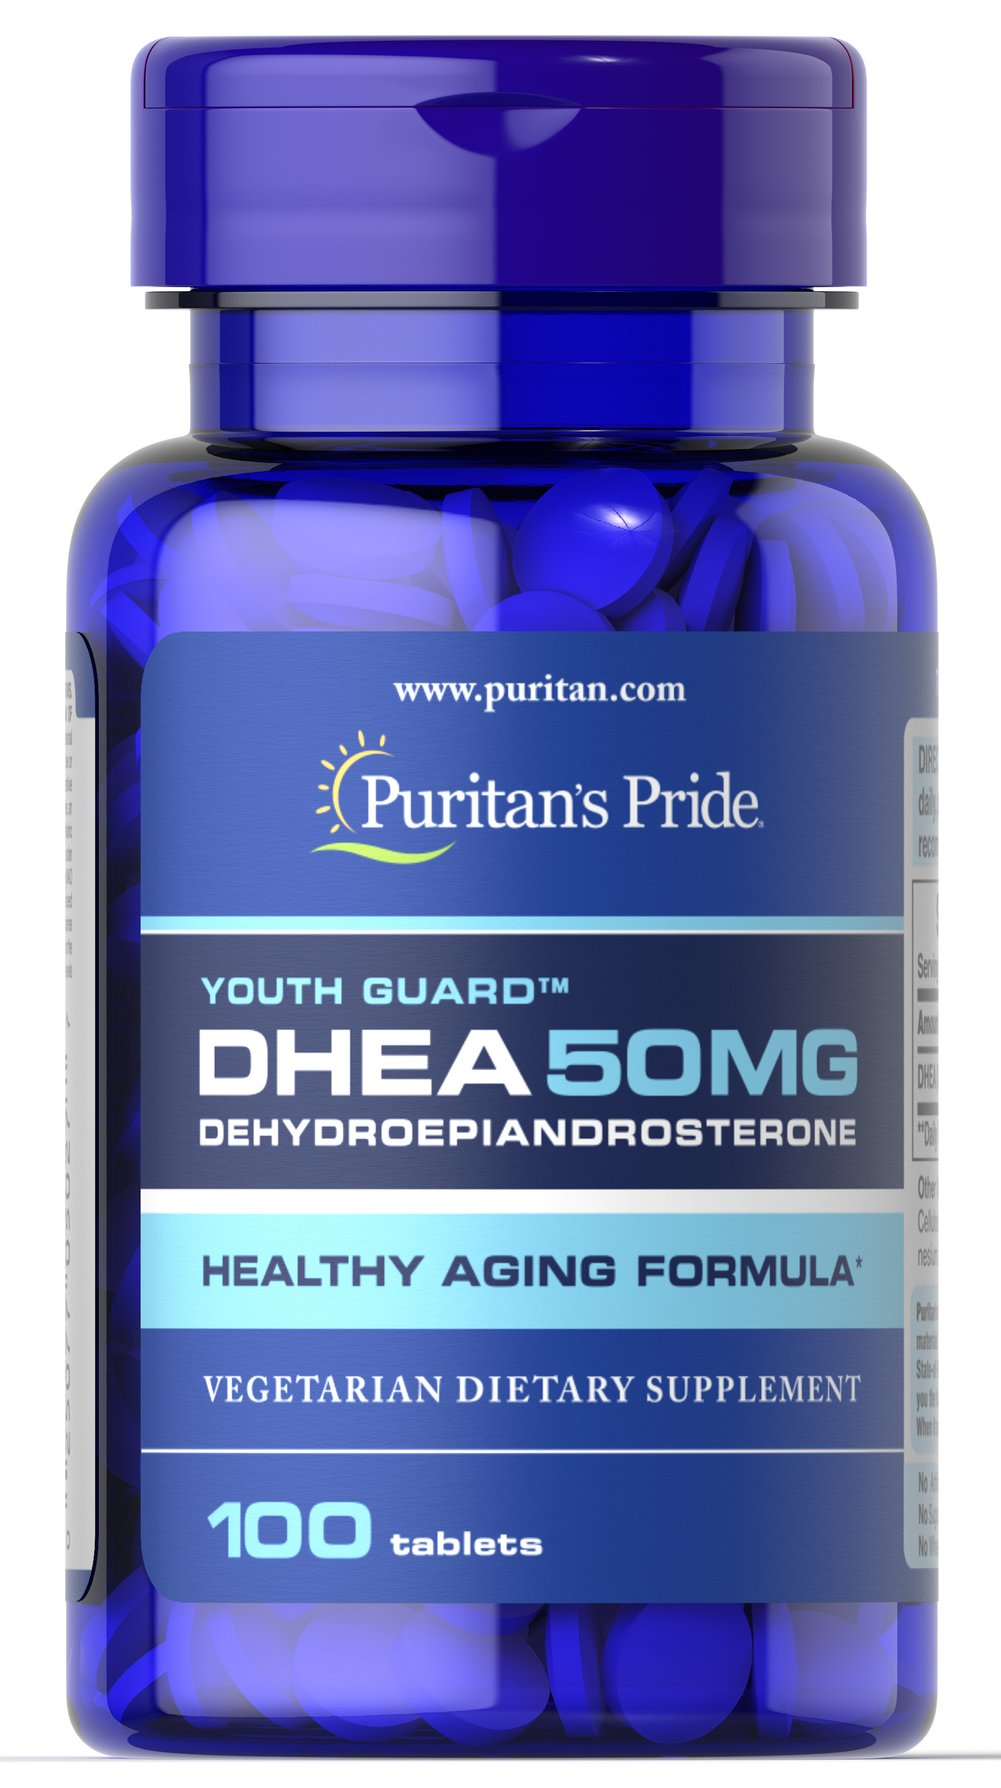 DHEA 50 mg <p>Levels of DHEA can decline with age as part of the natural aging process. DHEA is a hormone that is produced in our bodies by the adrenal glands and the levels of this hormone may begin to decline after the age of 30. Supplementing may help replenish what our bodies lose over time.<br /><br />A study published in the highly respected Journal of the American Medical Association found that supplementation with 50mg of DHEA per day in mature adults helped promote sug